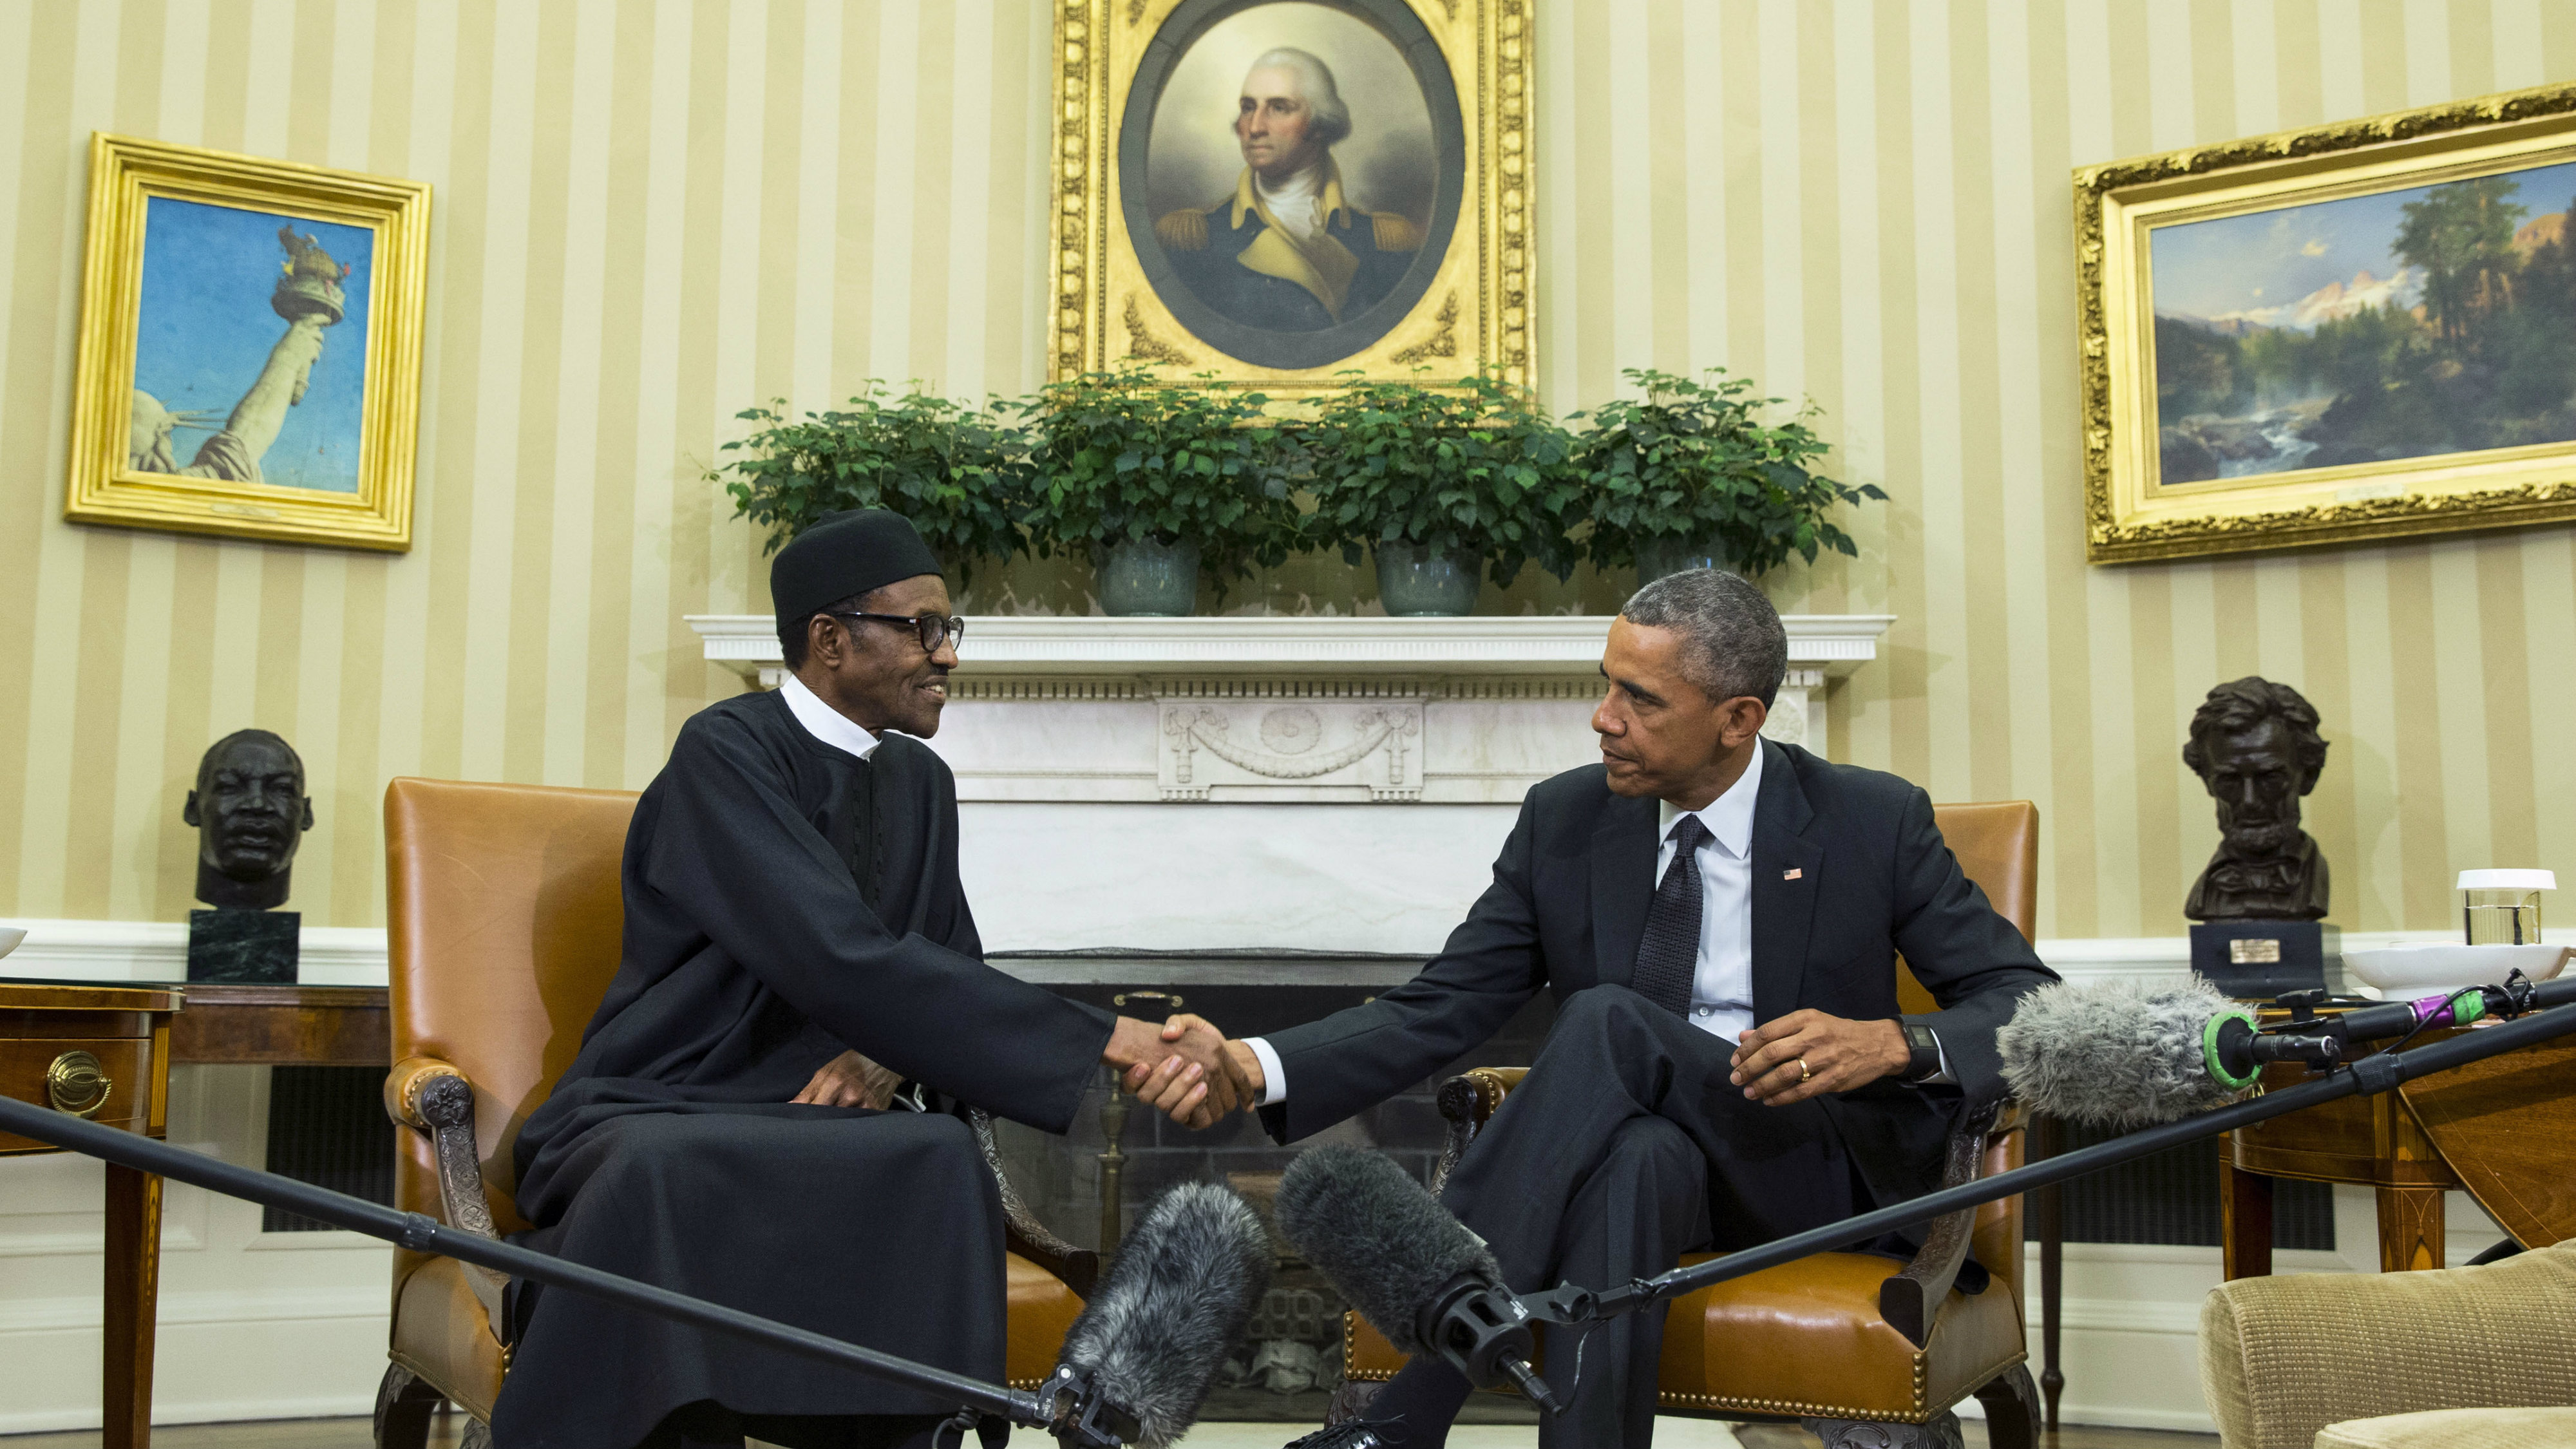 President Barack Obama, right, meets with Nigerian President Muhammadu Buhari, in the Oval Office of the White House, on Monday, July 20, 2015, in Washington. Buhari is seeking to shore up relations between the two countries and to request additional assistance in the fight against the Islamic extremist group Boko Haram. (AP Photo/Evan Vucci)